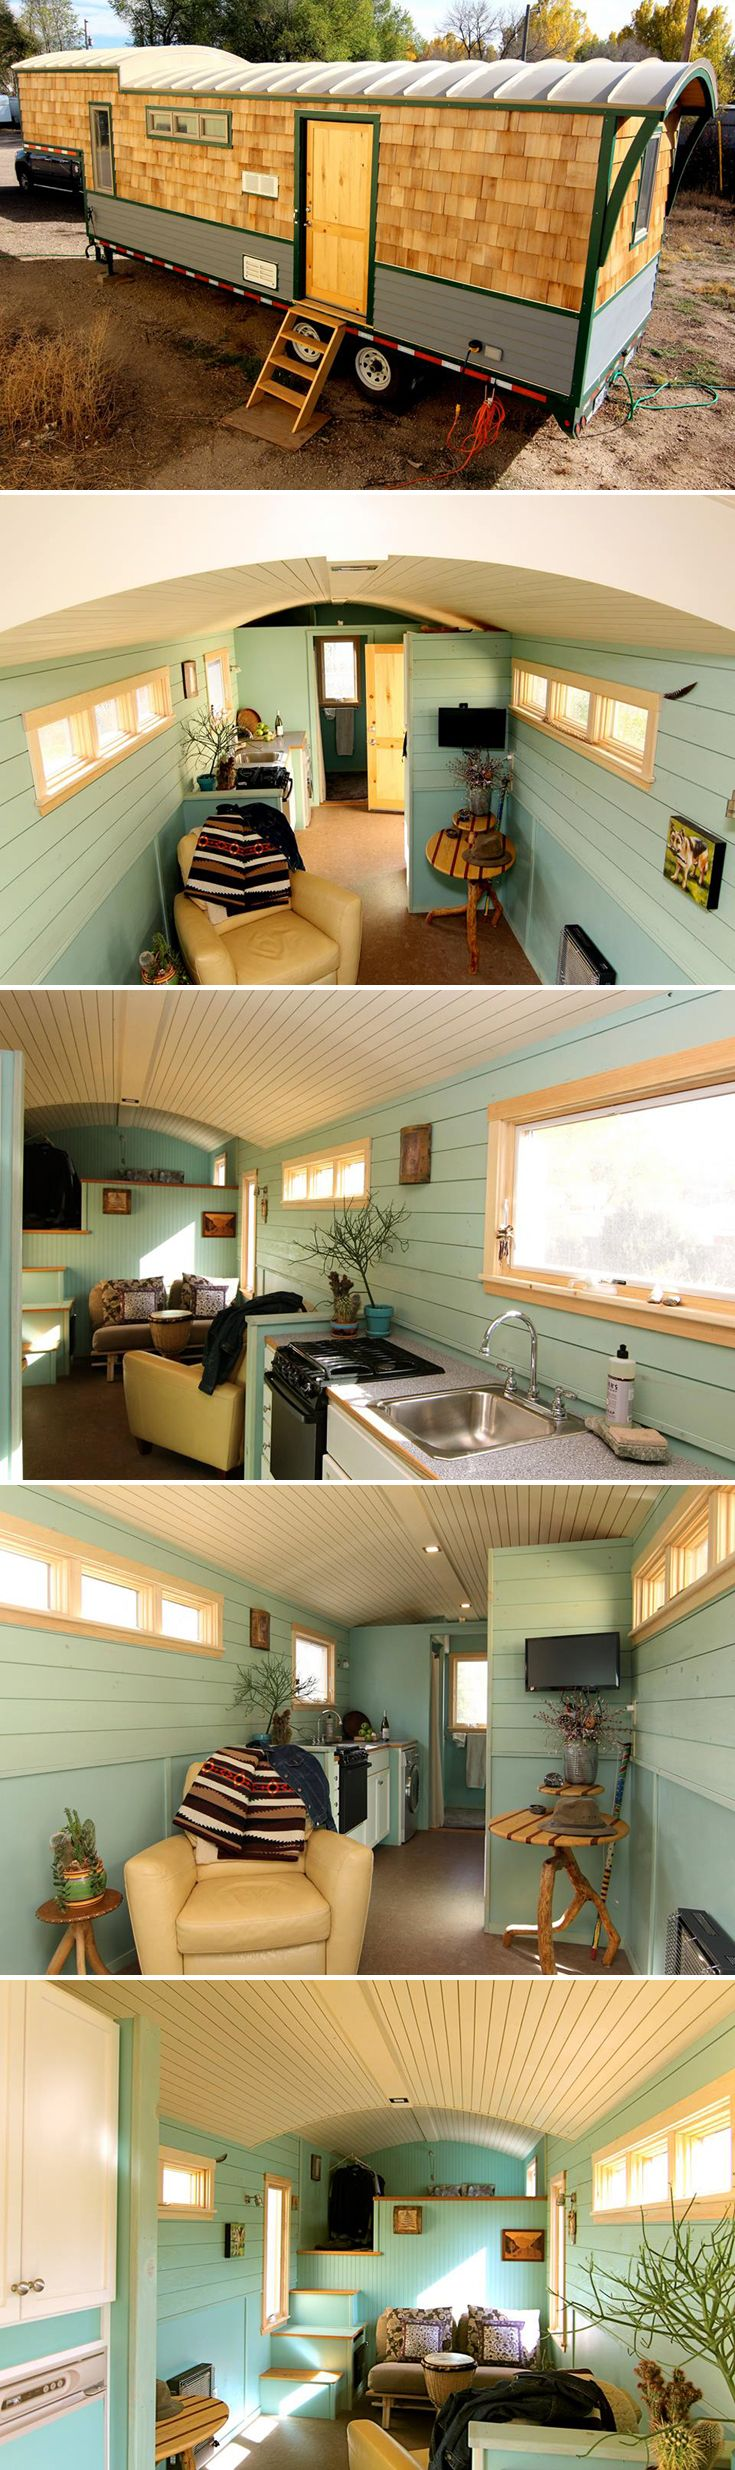 Fifth Wheel Tiny Home By Ken Leigh